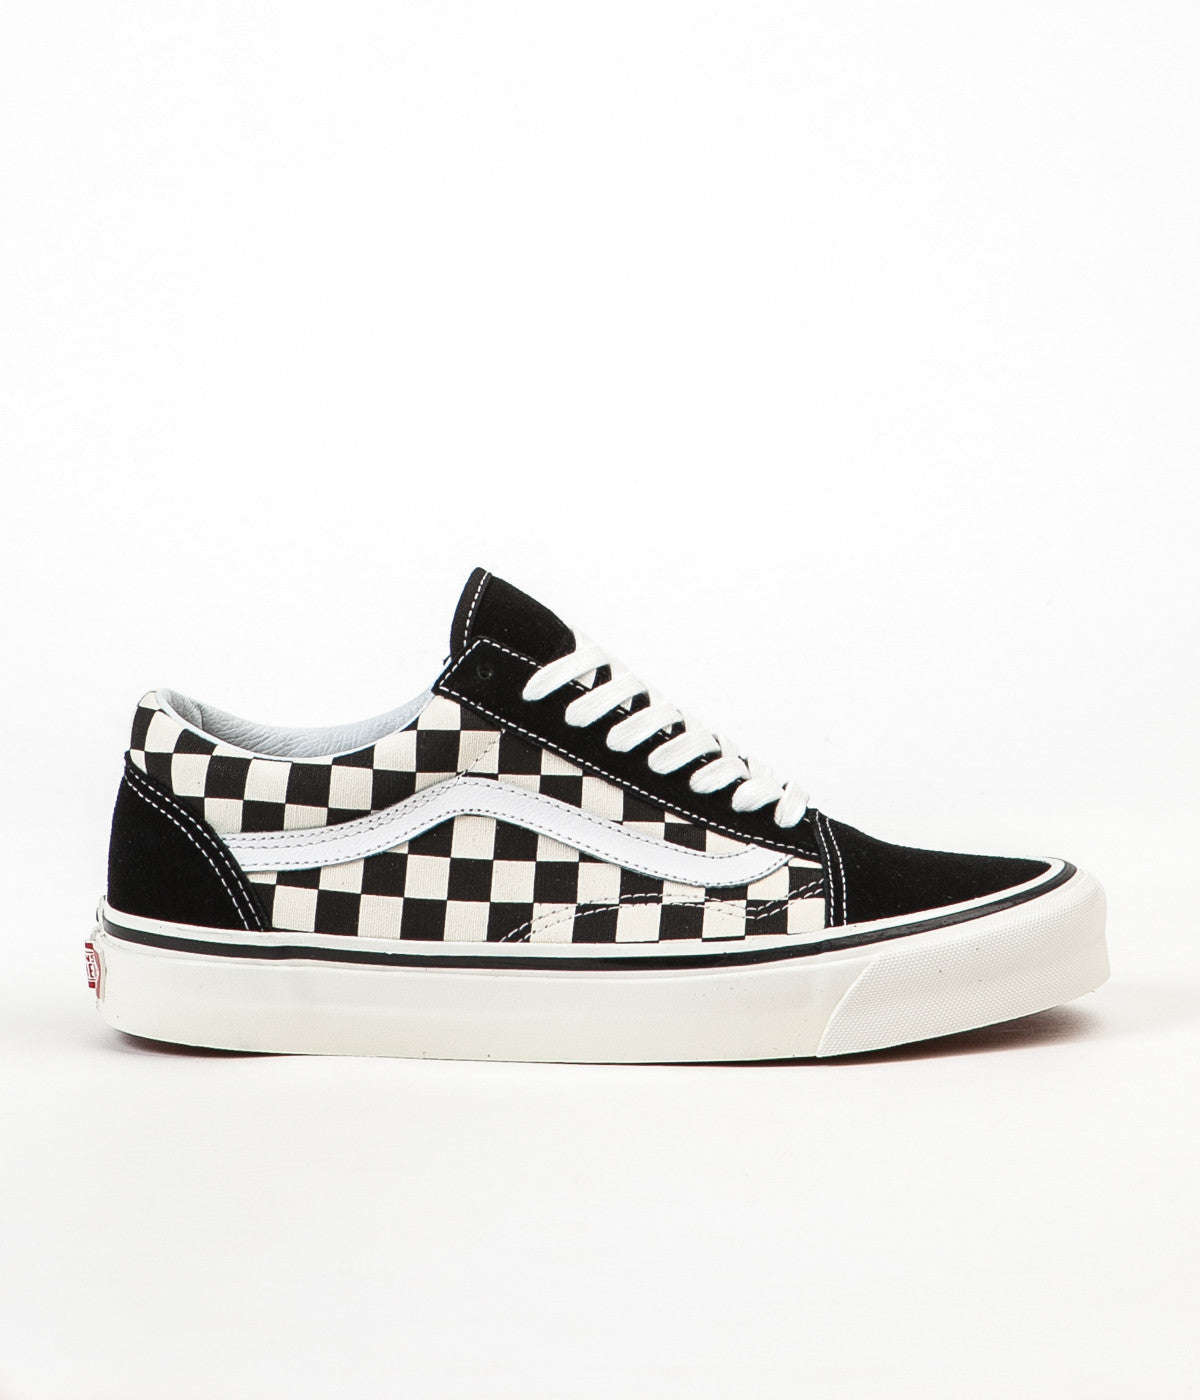 3435061780 Vans Old Skool 36 DX Anaheim Factory Shoes - Black   Check